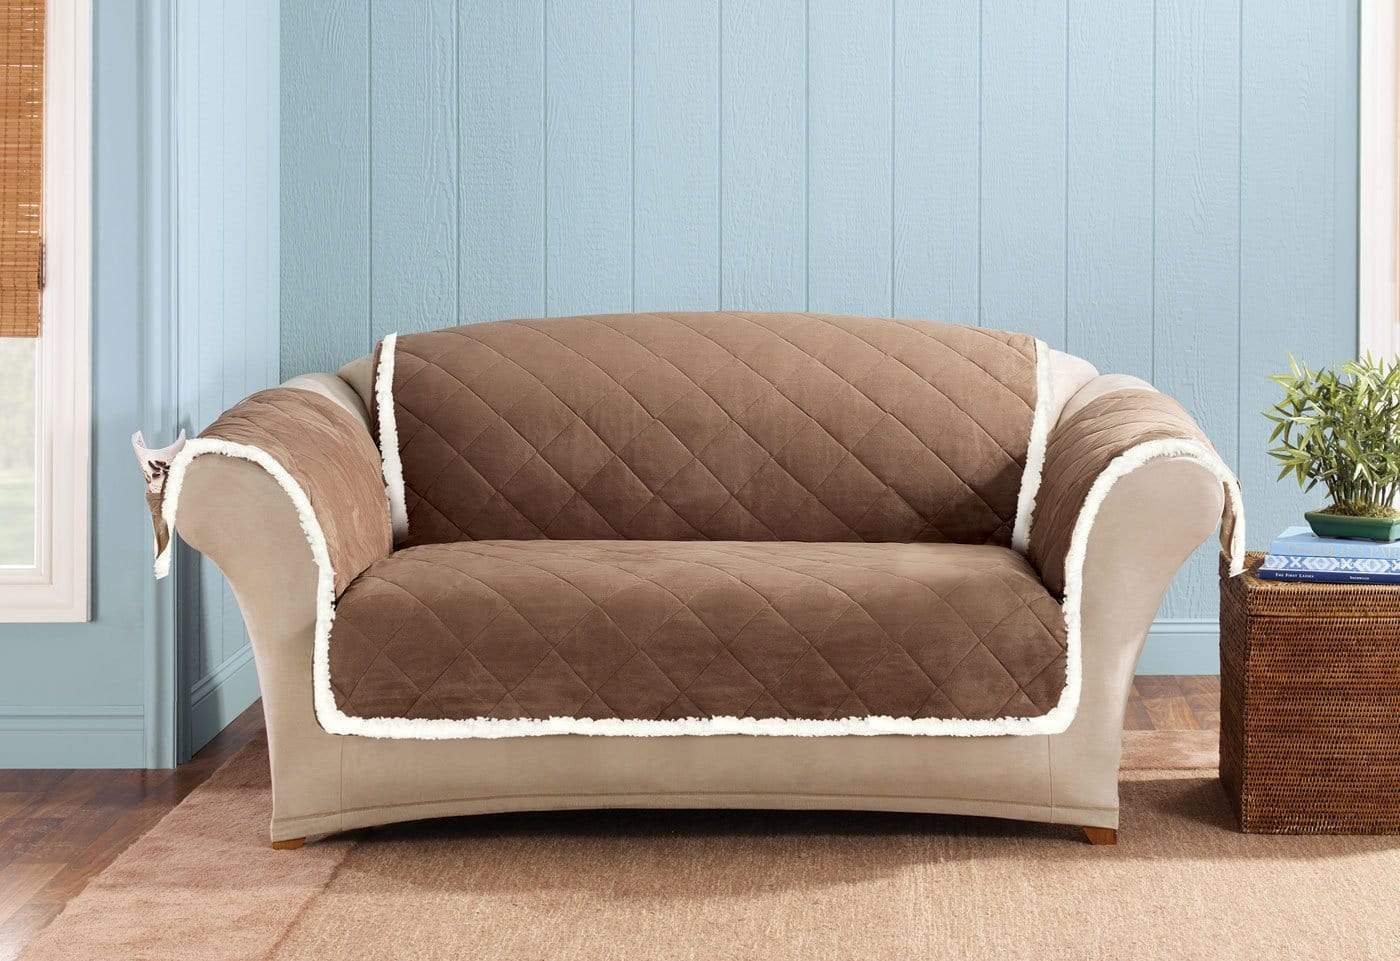 Soft Suede & Sherpa Loveseat Furniture Cover 100% Polyester Pet Furniture Cover Machine Washable - Loveseat / Brown/Cream